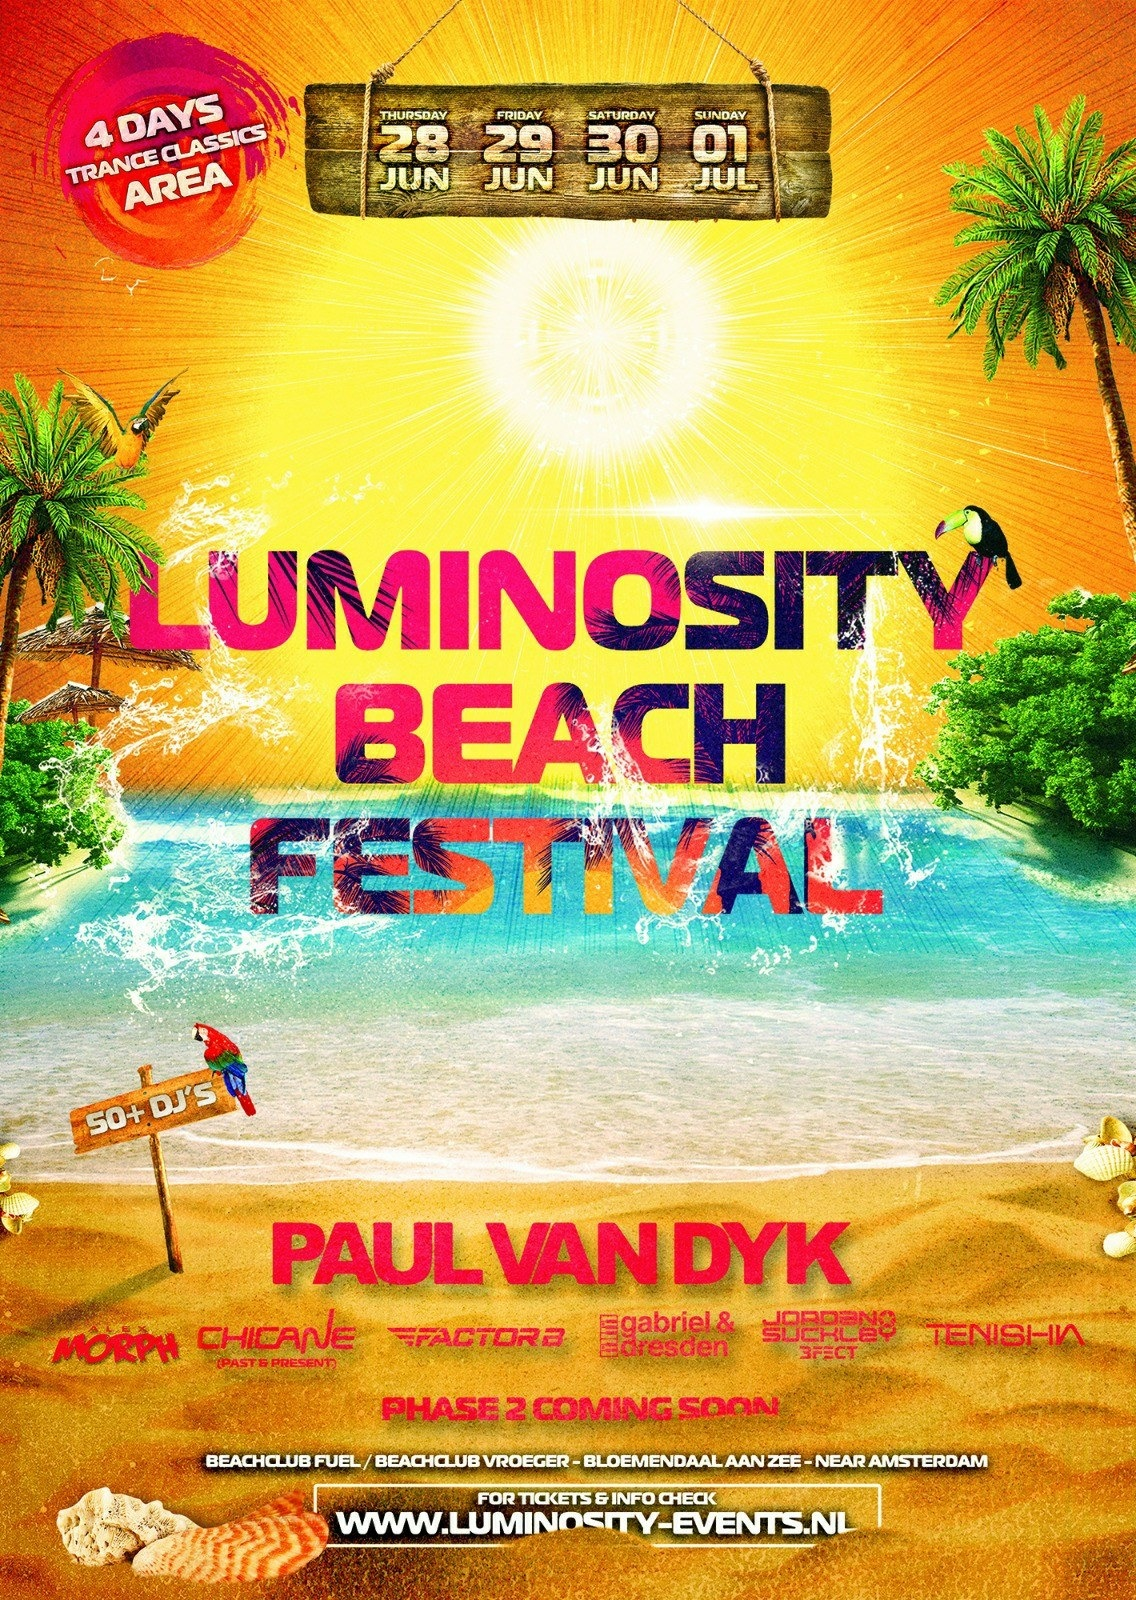 Luminosity Beach 2018